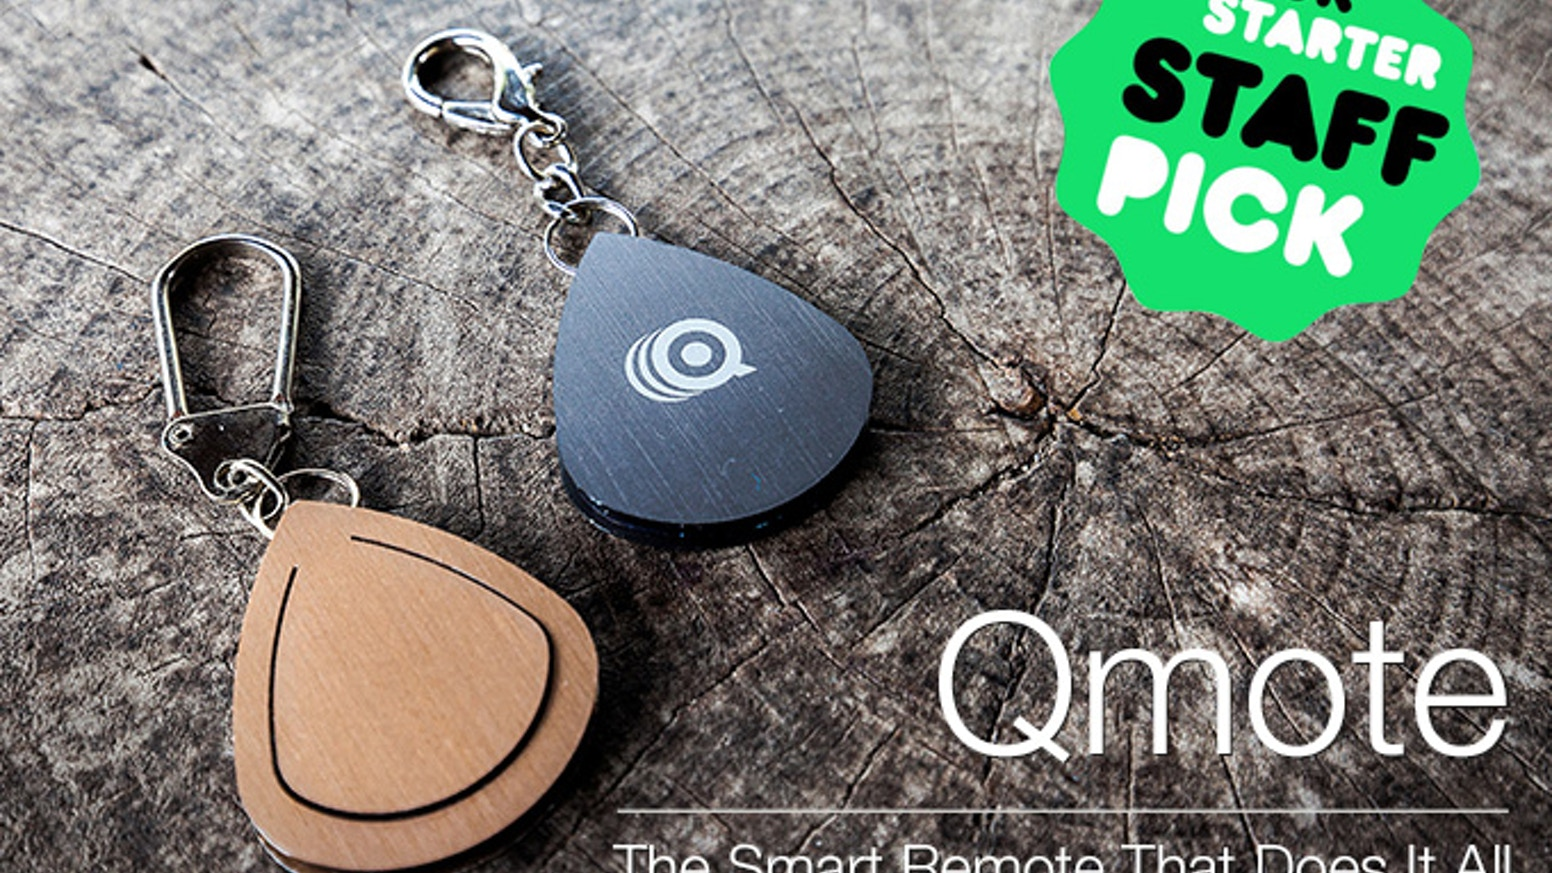 Qmote is an intuitive, single-button remote control which lets you perform actions on your phone, even when it's out of reach.